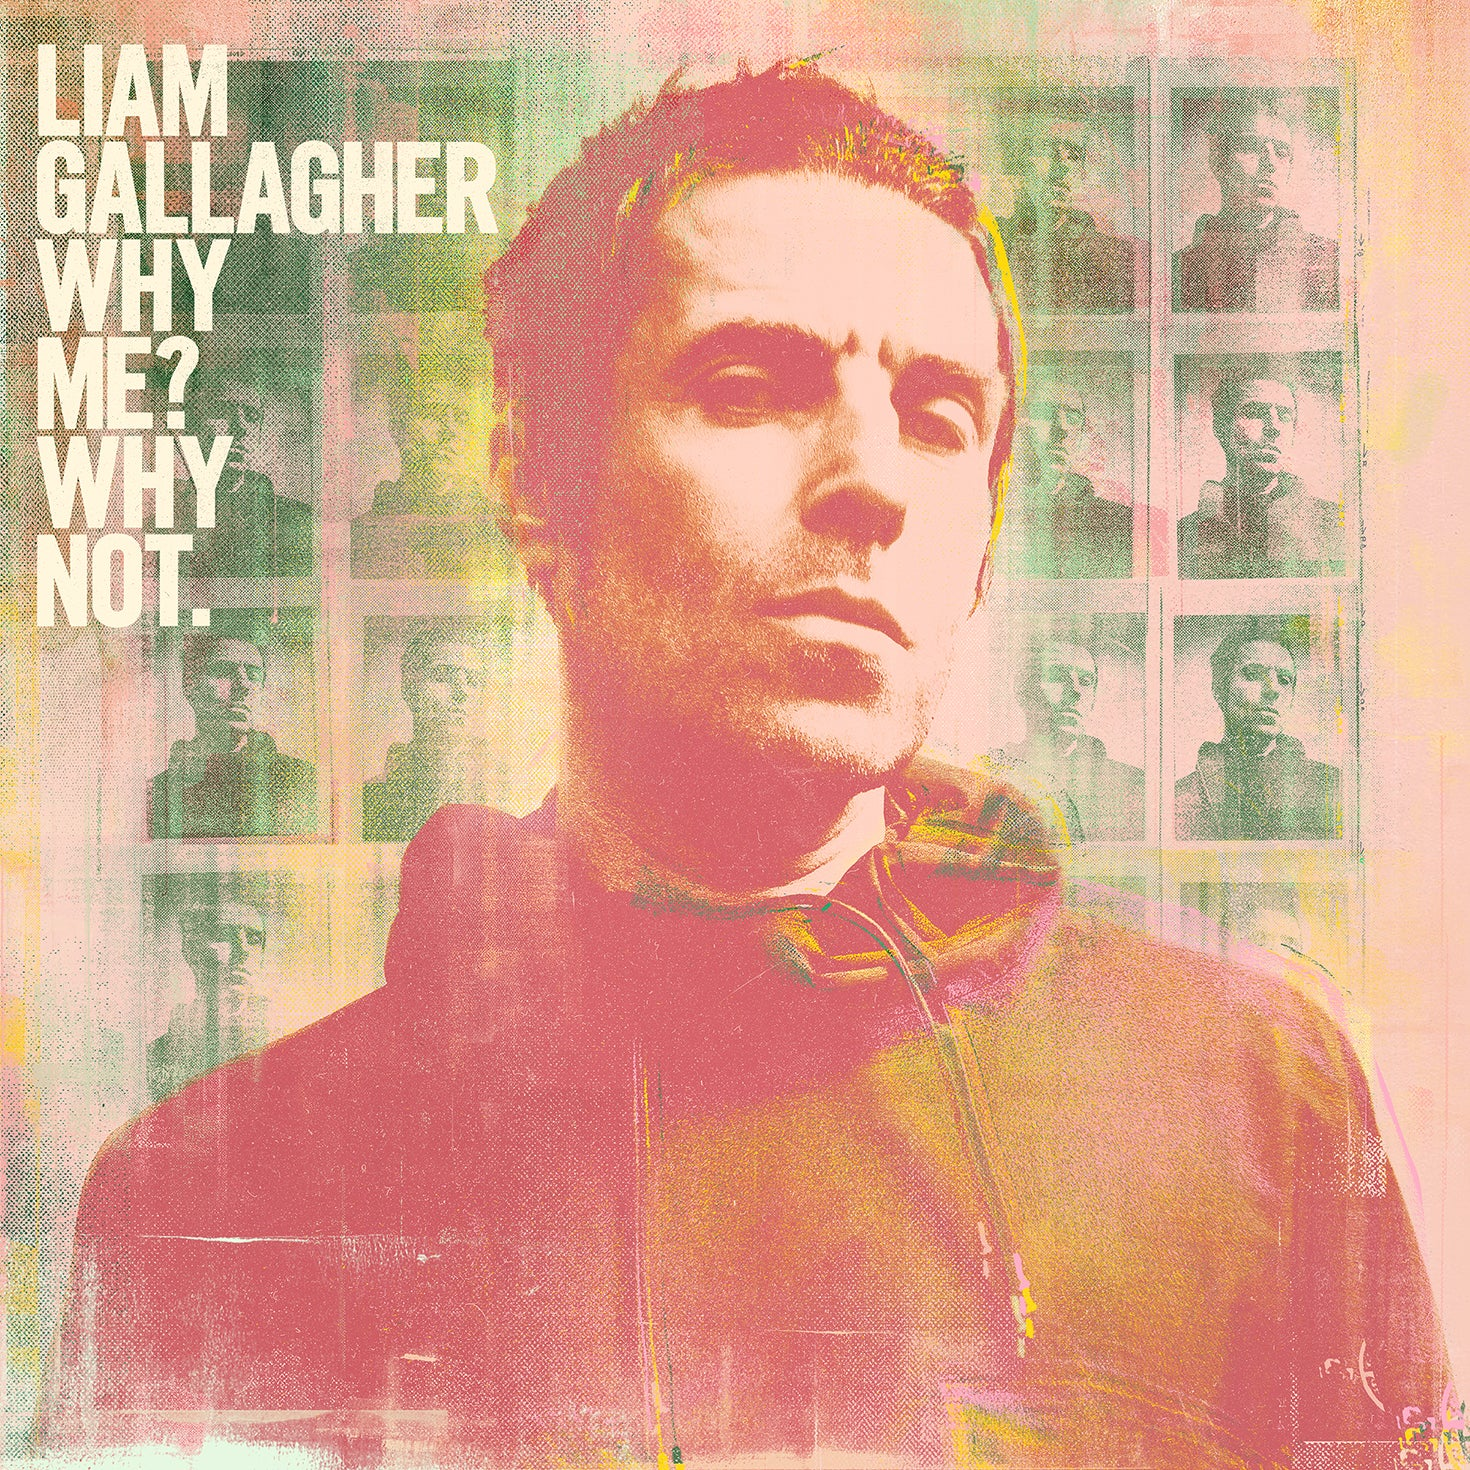 Why Me? Why Not.: - Liam Gallagher [DELUXE CD] OUT 20.09.19 PRE-ORDER NOW